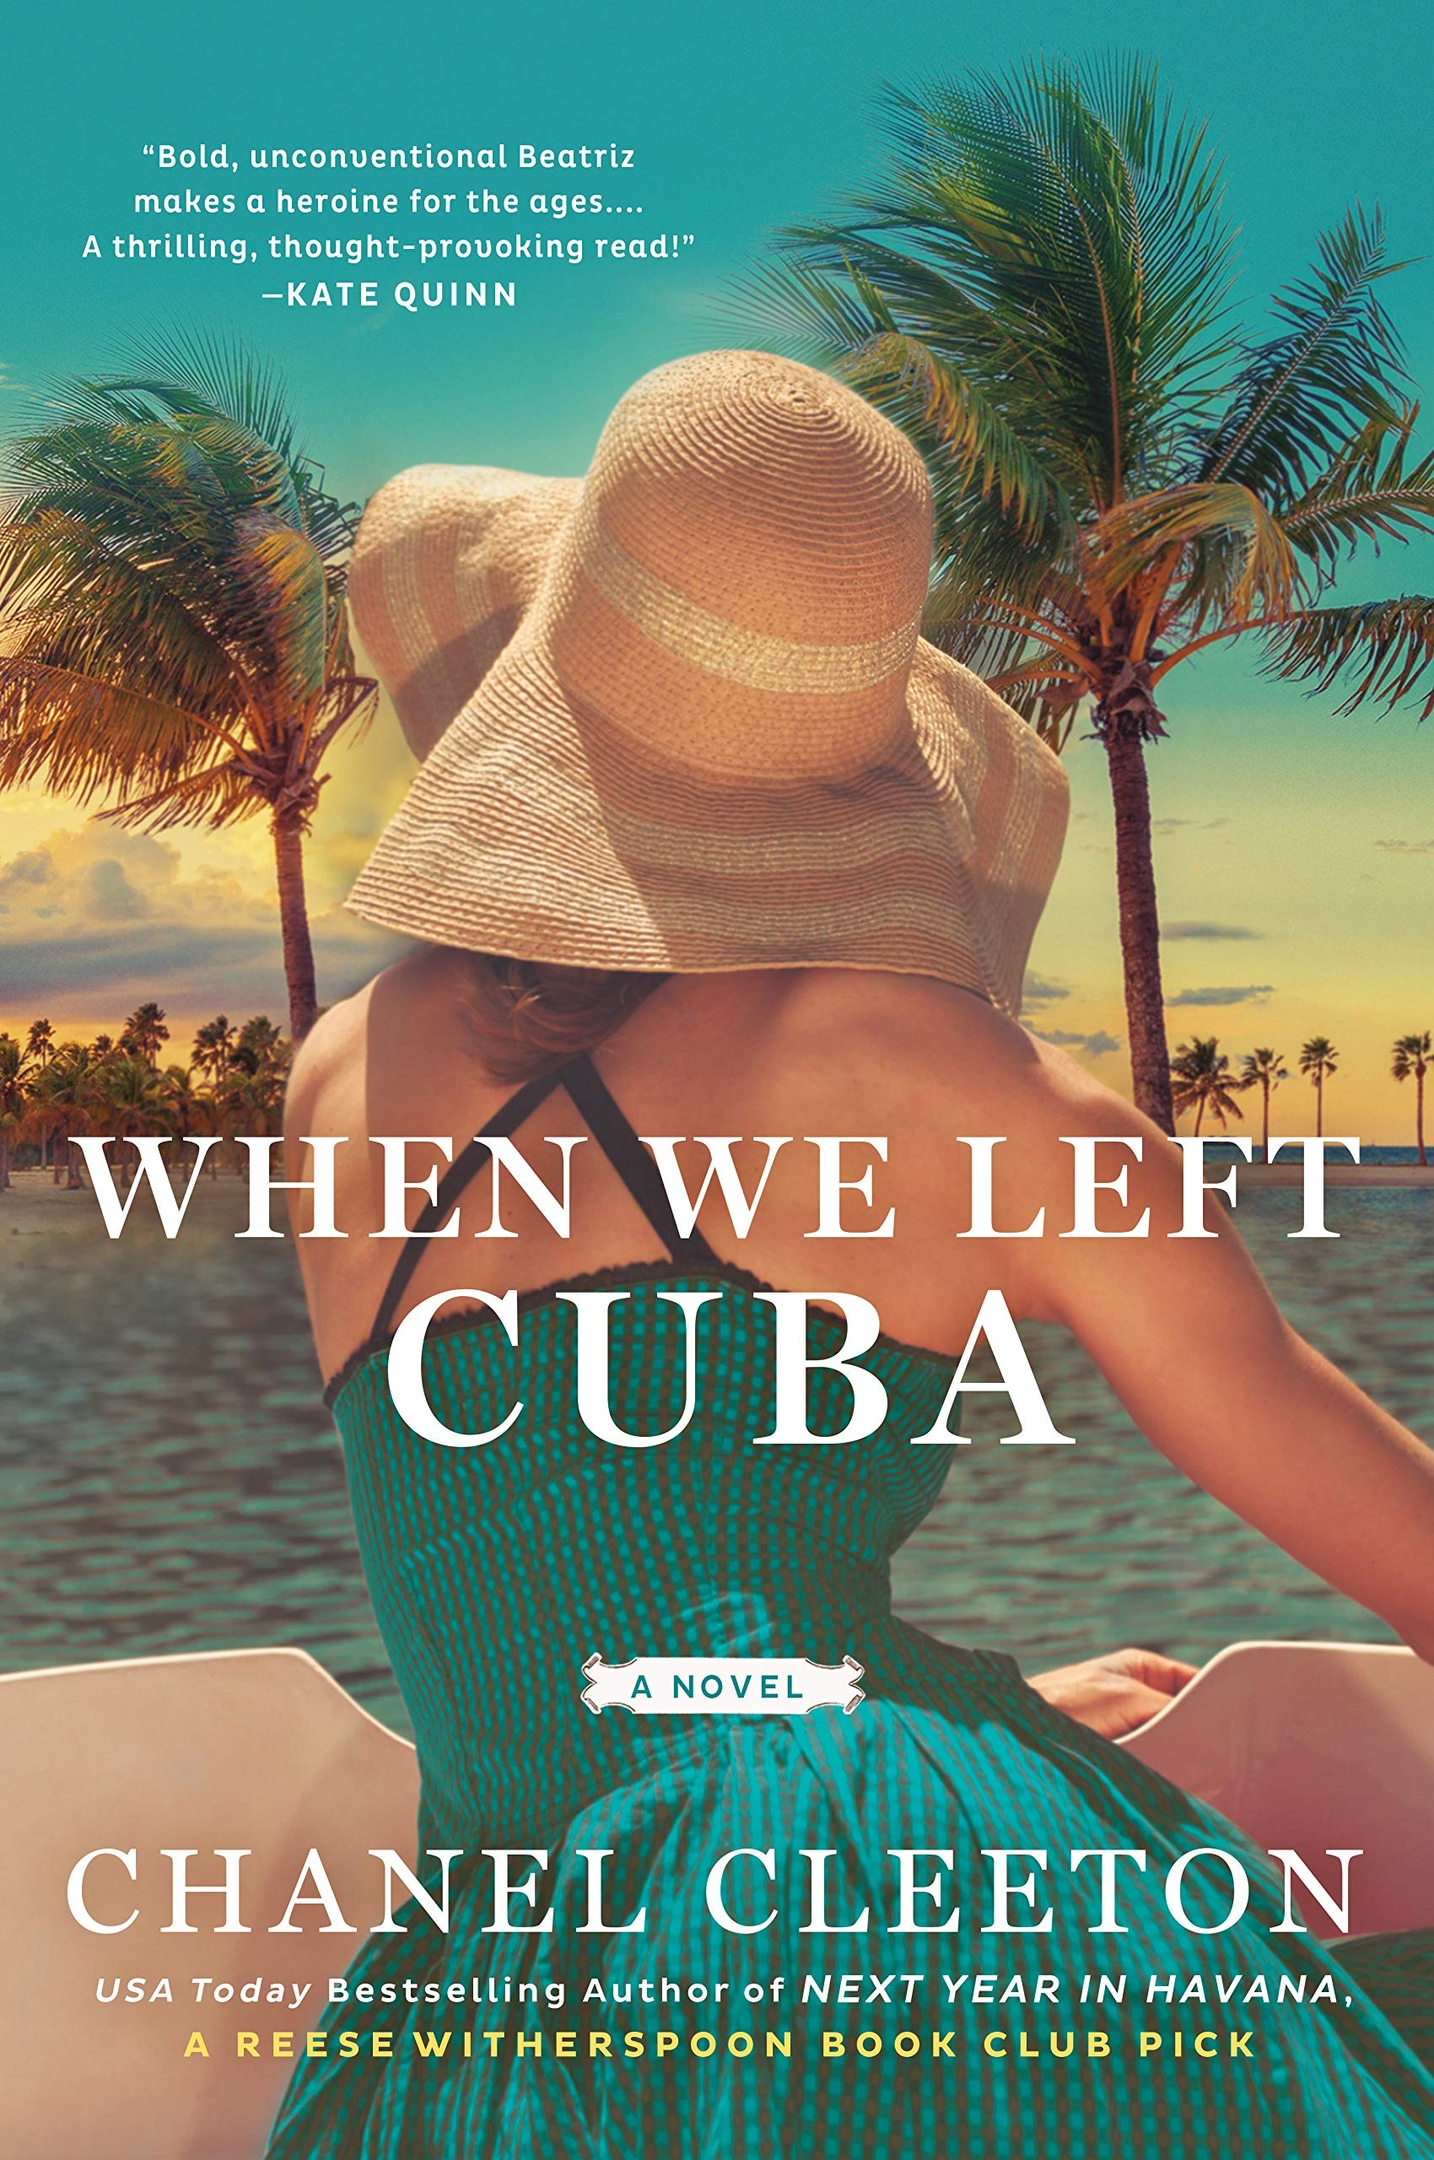 Chanel Cleeton – When We Left Cuba